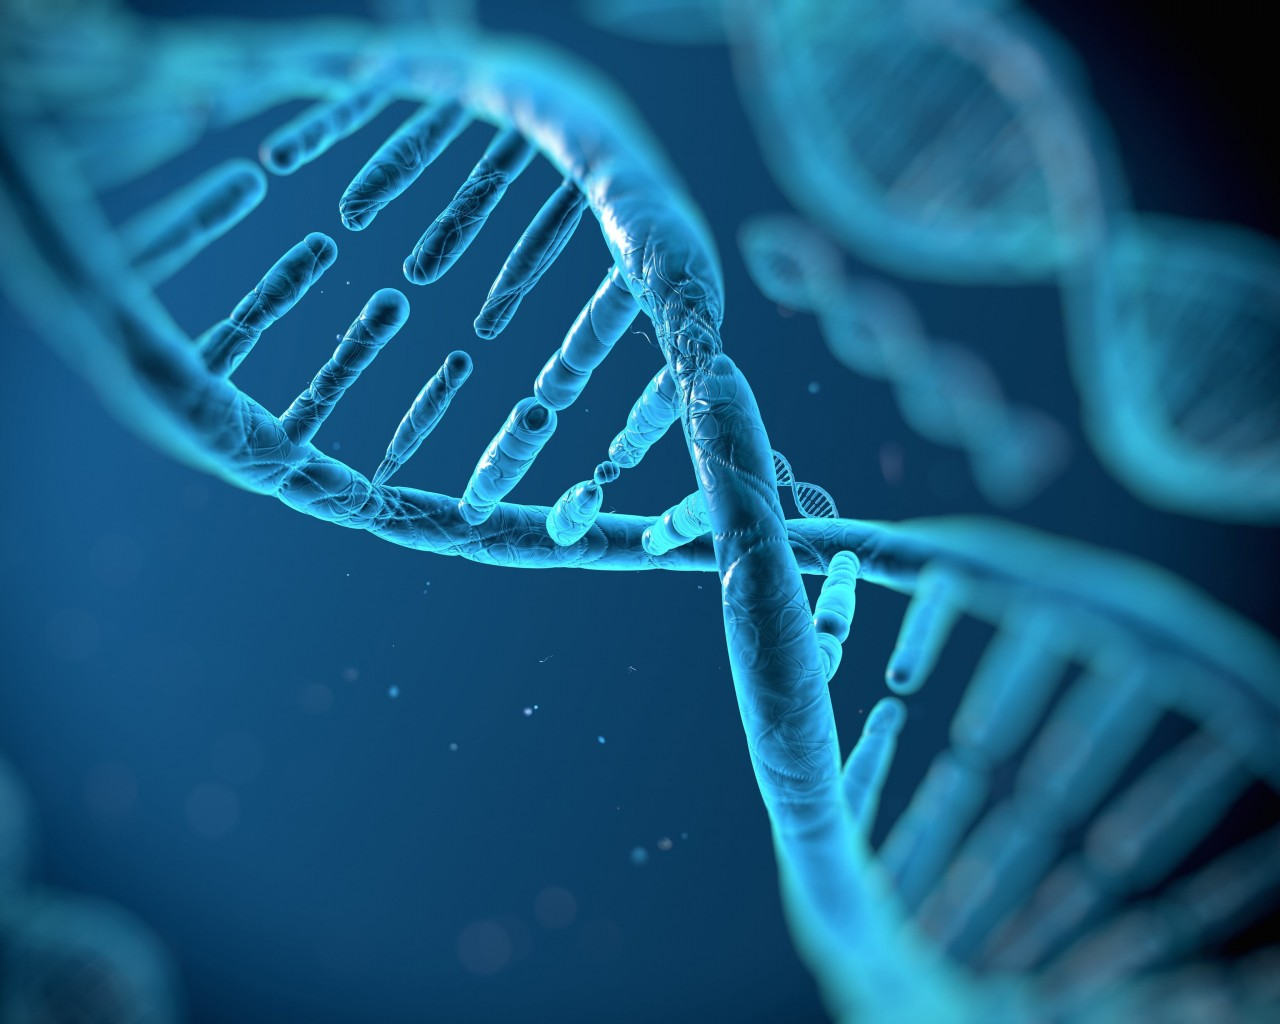 DNA Structure Wallpaper for Desktop 1280x1024